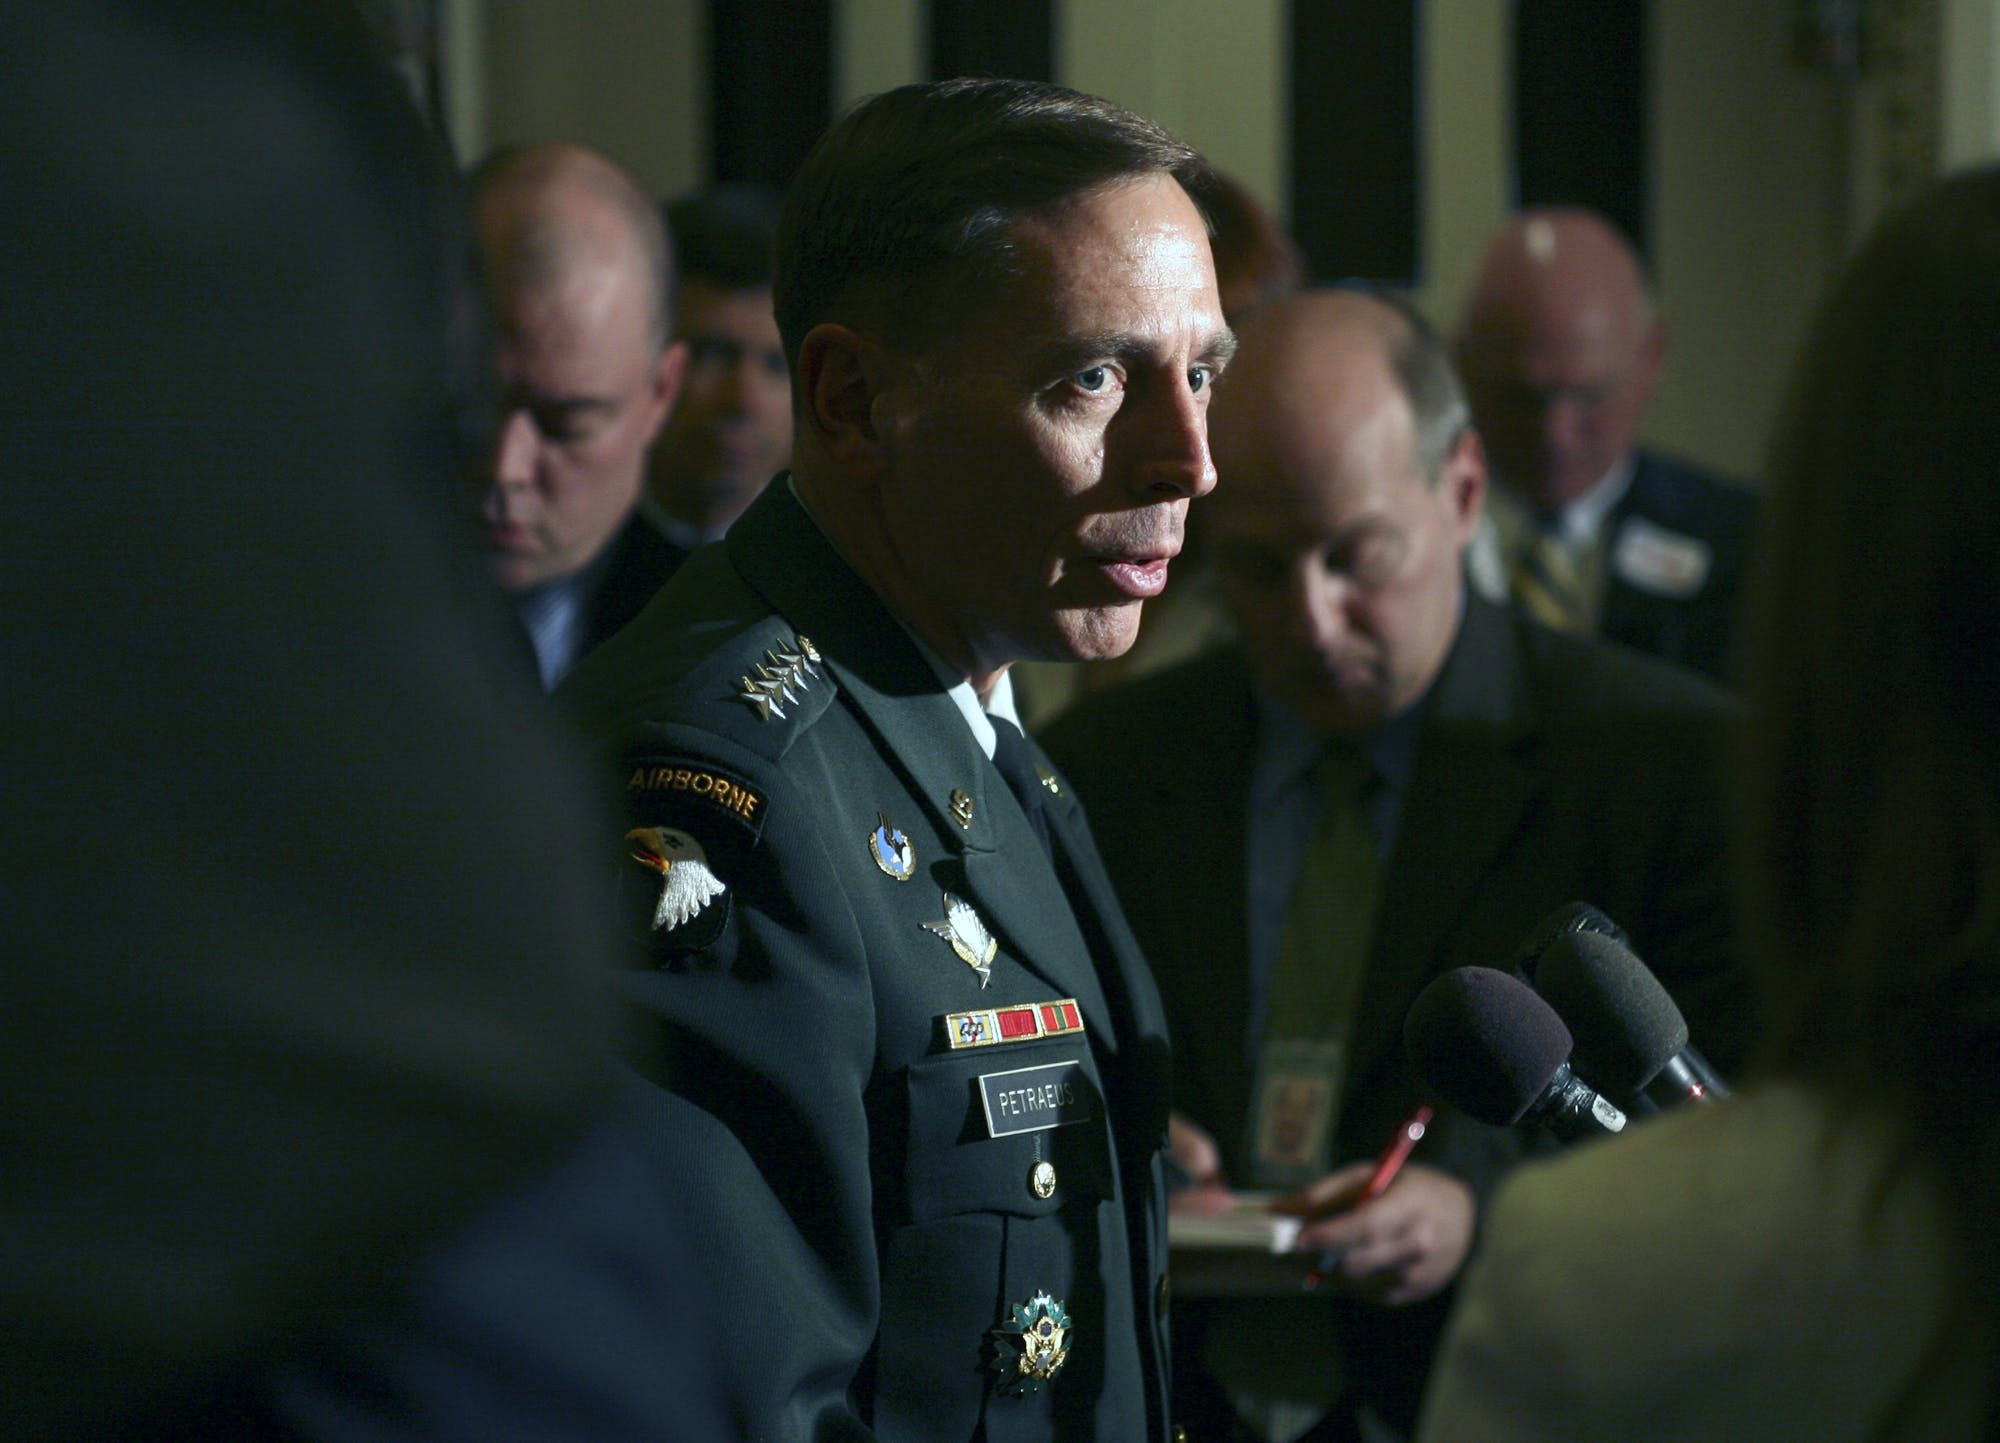 Army General David Petraeus on Capitol Hill in Washington, Wednesday, April 25, 2007 after meeting with members of Congress about the latest on the war in Iraq.  (AP Photo/Lawrence Jackson)